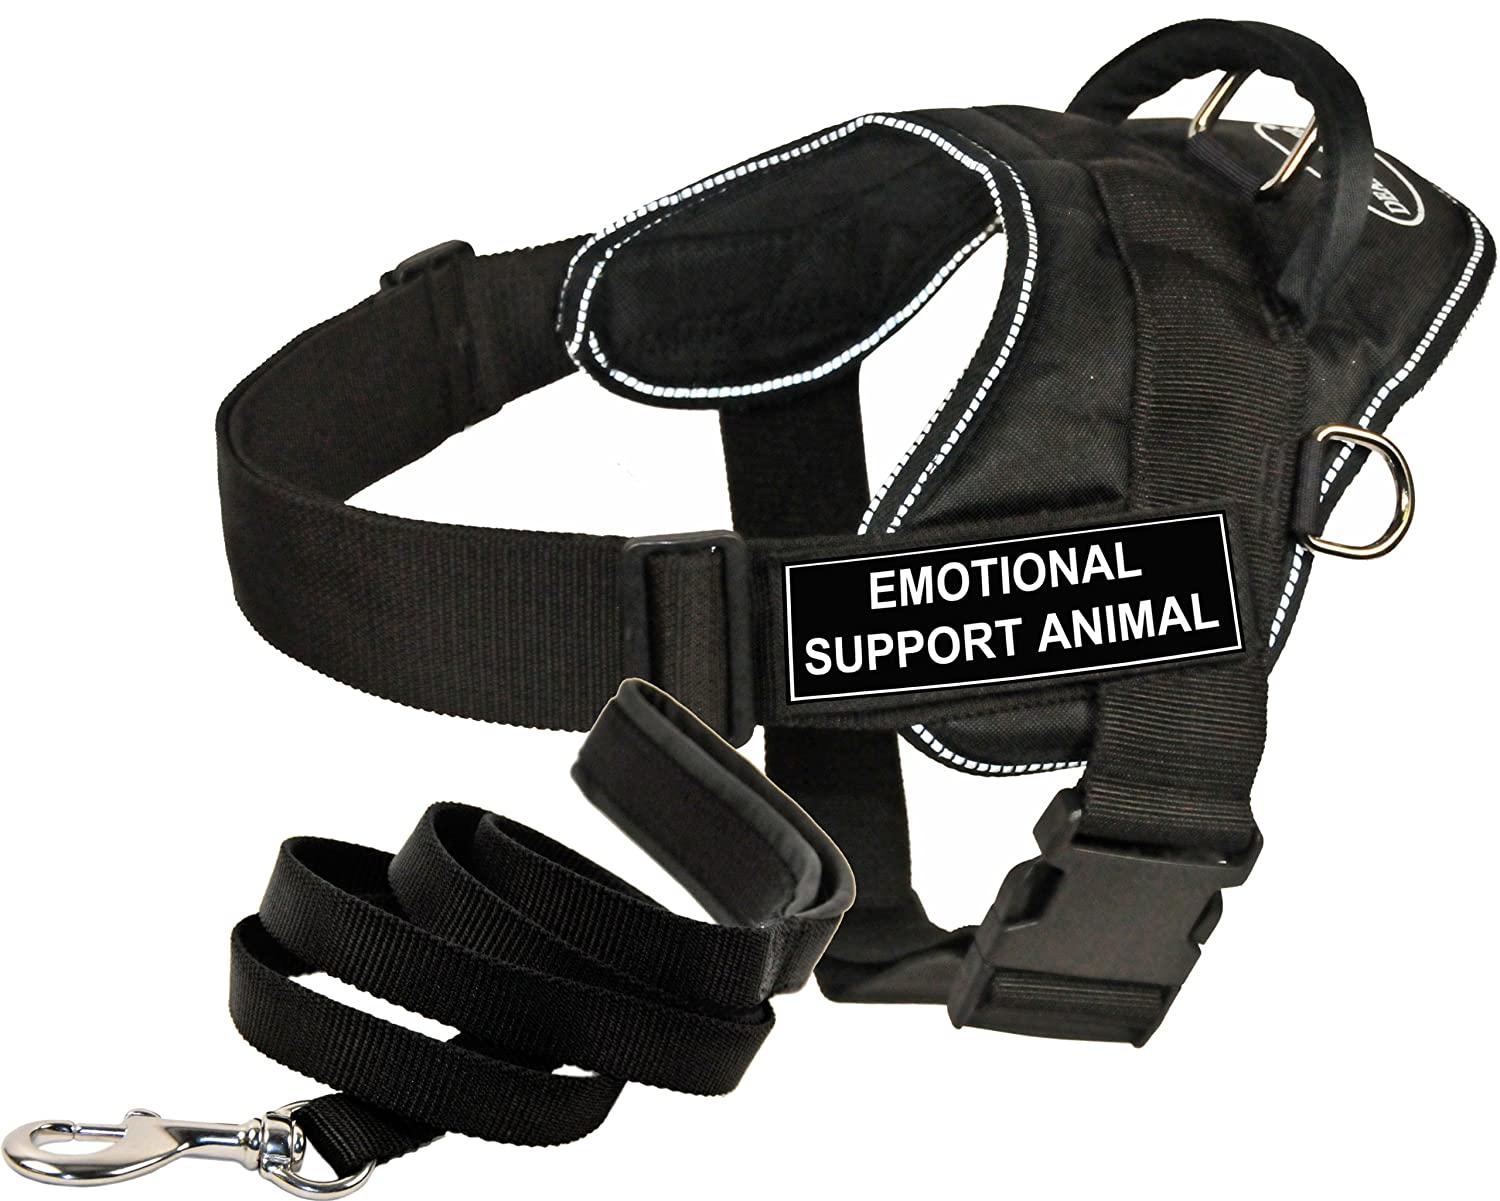 Dean and Tyler Bundle One DT Fun Works  Harness, Emotional Support Animal, Reflective, XS + One Padded Puppy  Leash, 6 FT Stainless Snap Black